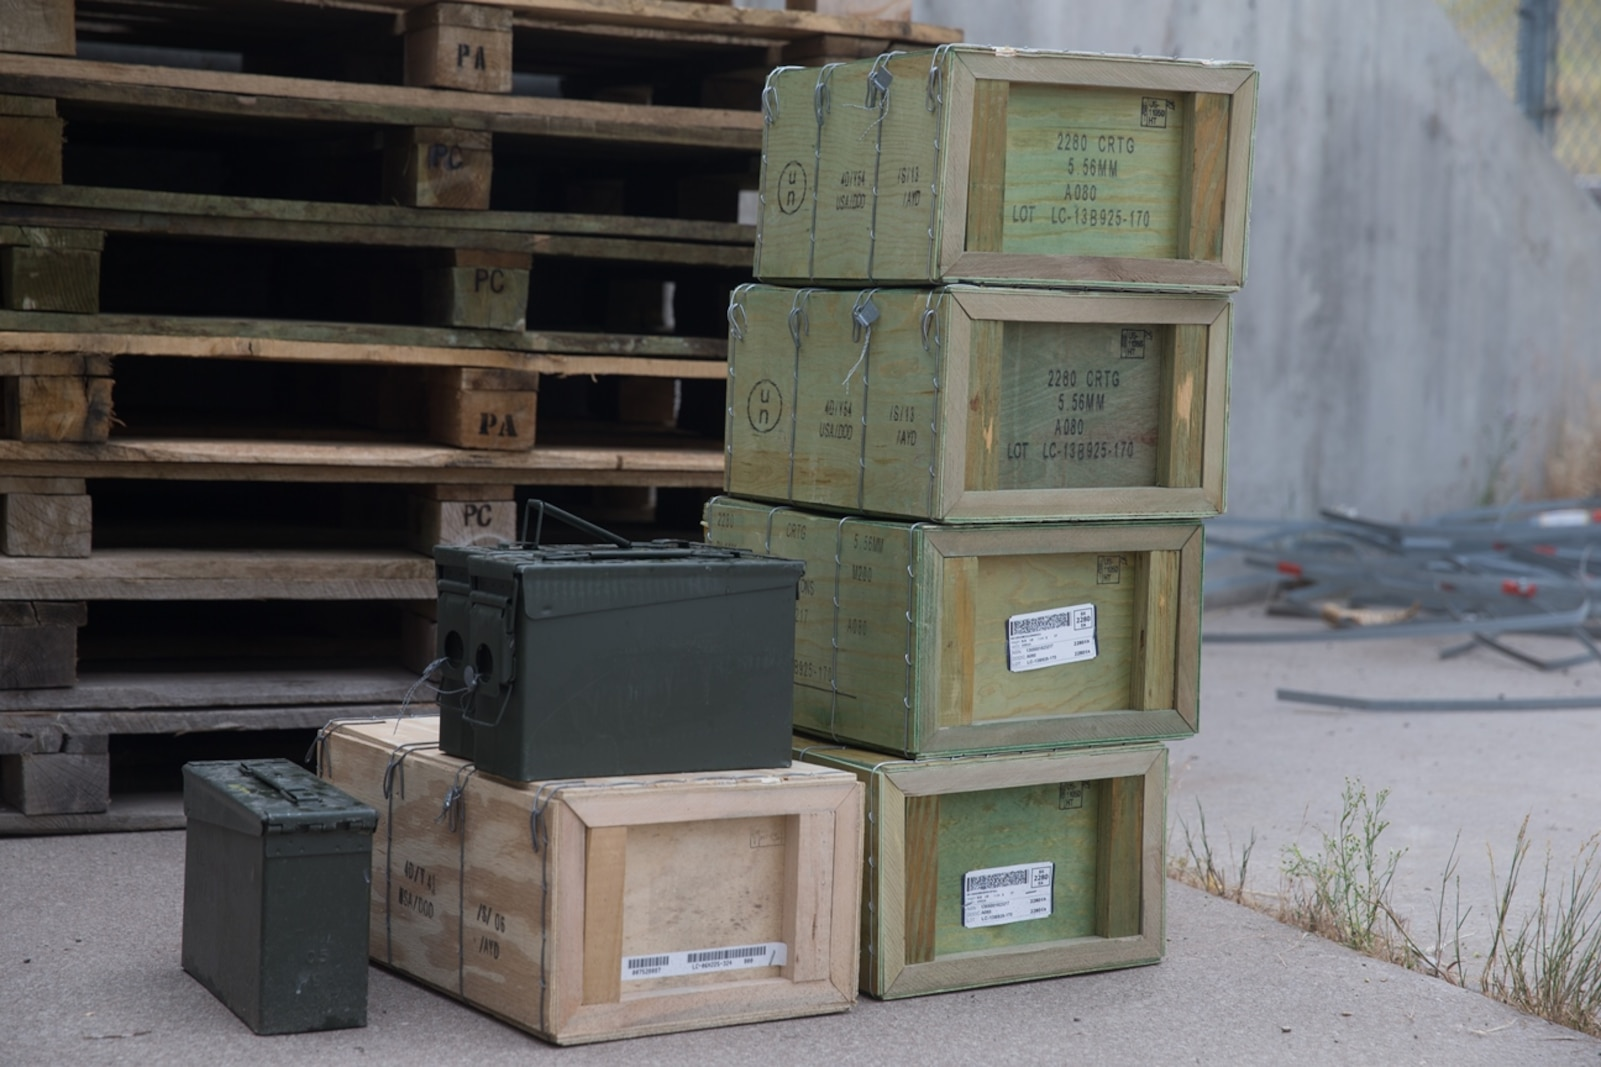 Blank ammunition is being prepared for transportation to the Marines with Combat Logistics Battalion 5, Combat Logistics Regiment 1, 1st Marine Logistics Group, who will utilize the ammunition for Mountain Training Exercise 4-17 at Marine Corps Mountain Warfare Training Center, August 3, 2017. The blank ammunition will be used by Marines participating in convoy exercises which may involve simulated enemy ambushes. (U.S. Marine Corps photo by Lance Cpl. Timothy Shoemaker)